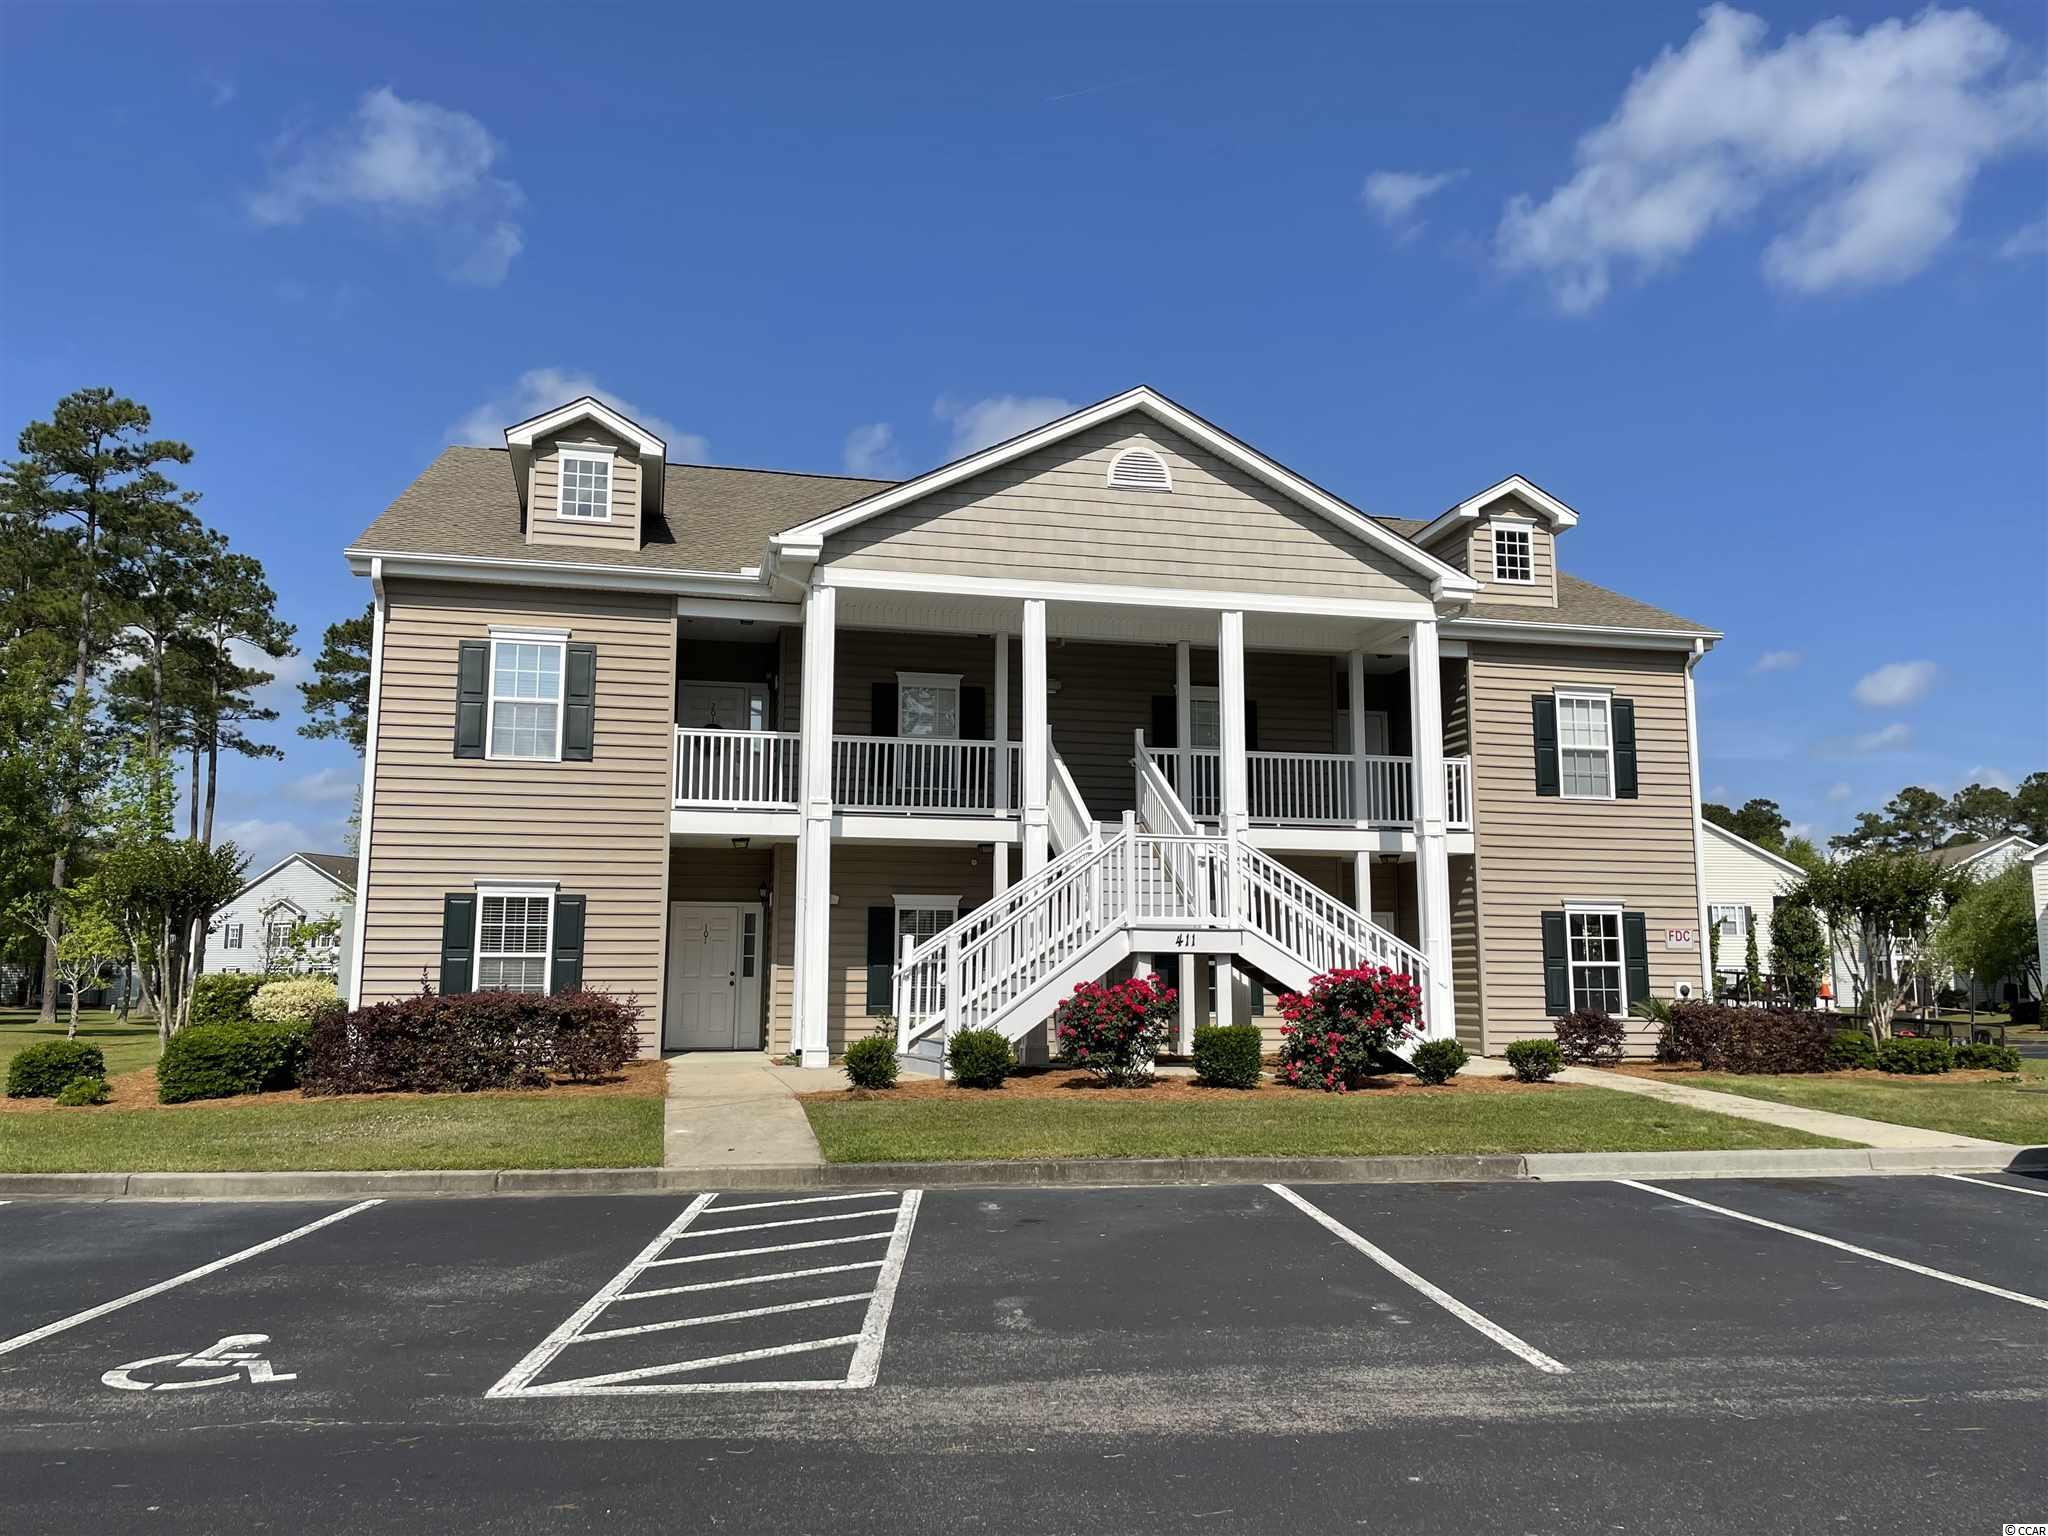 GORGEOUS 3BR/2BA Condo on the first floor! Still looks brand new! Features tile and carpet, bead board and crown molding. Open, spacious floorplan, split bedroom plan. Master Bedroom with ceiling fan and walk-in closet. Master Bath features double sinks and garden tub/shower combo. Amazing high quality kitchen cabinets, double sink, range, refrigerator, microwave, garbage disposal and dishwasher. Laundry room off kitchen. Screened porch with storage. HVAC 2019 Great location in Blackmoor Golf Course community close to shopping, restaurants, the Murrells Inlet Marshwalk and minutes to the beach. Homeowners amenities include outdoor pool and clubhouse. HOA fee includes Master Insurance Policy, water, sewer, trash, lawn maintenance, pool, clubhouse and basic cable.